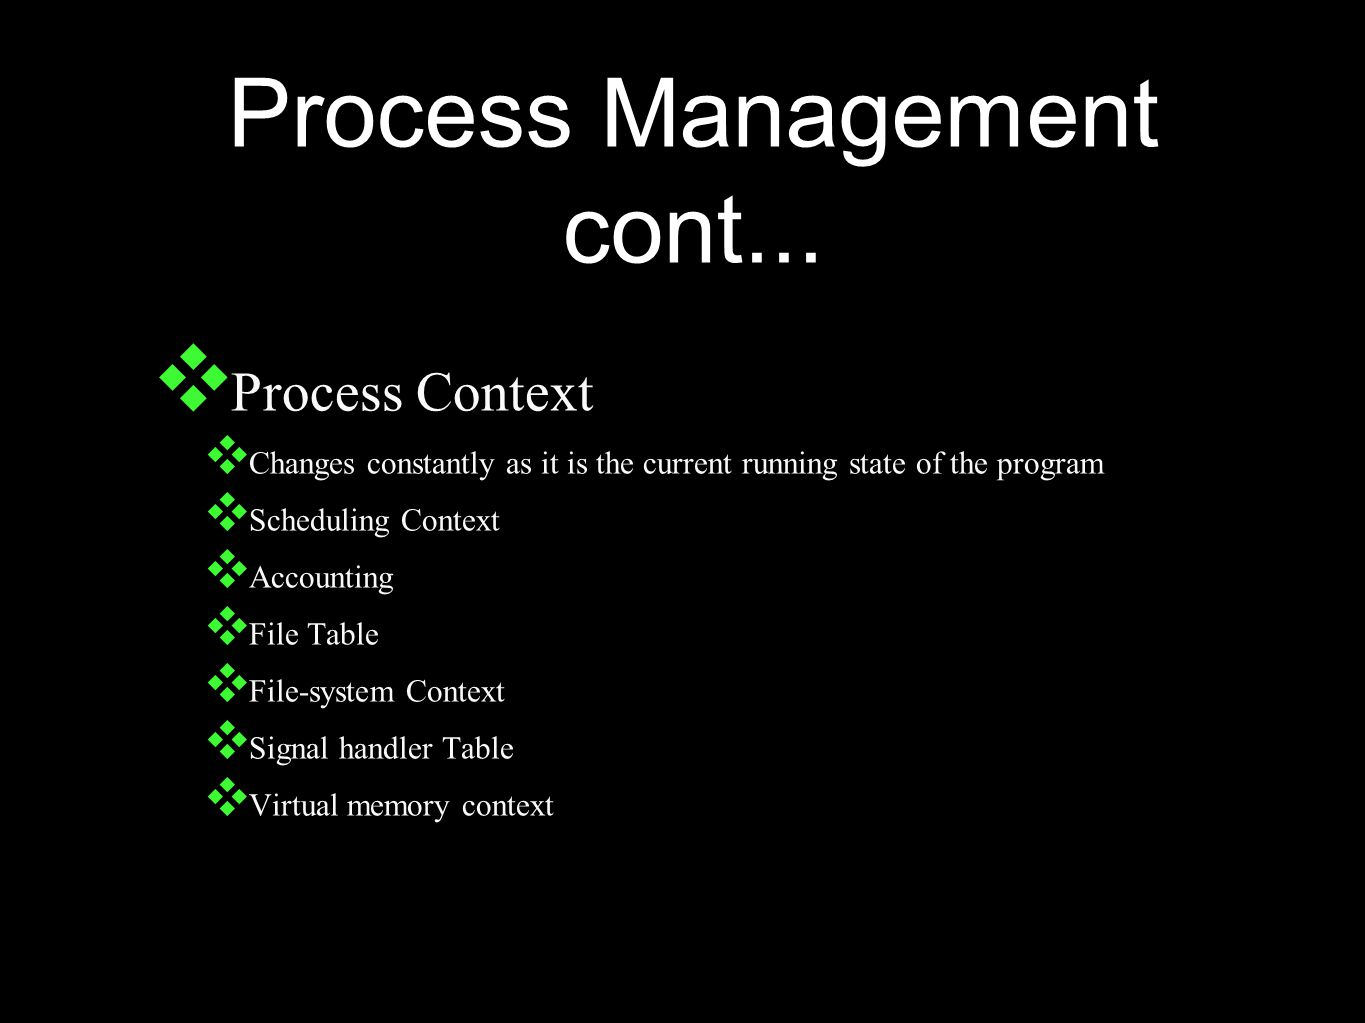 Process Management cont...